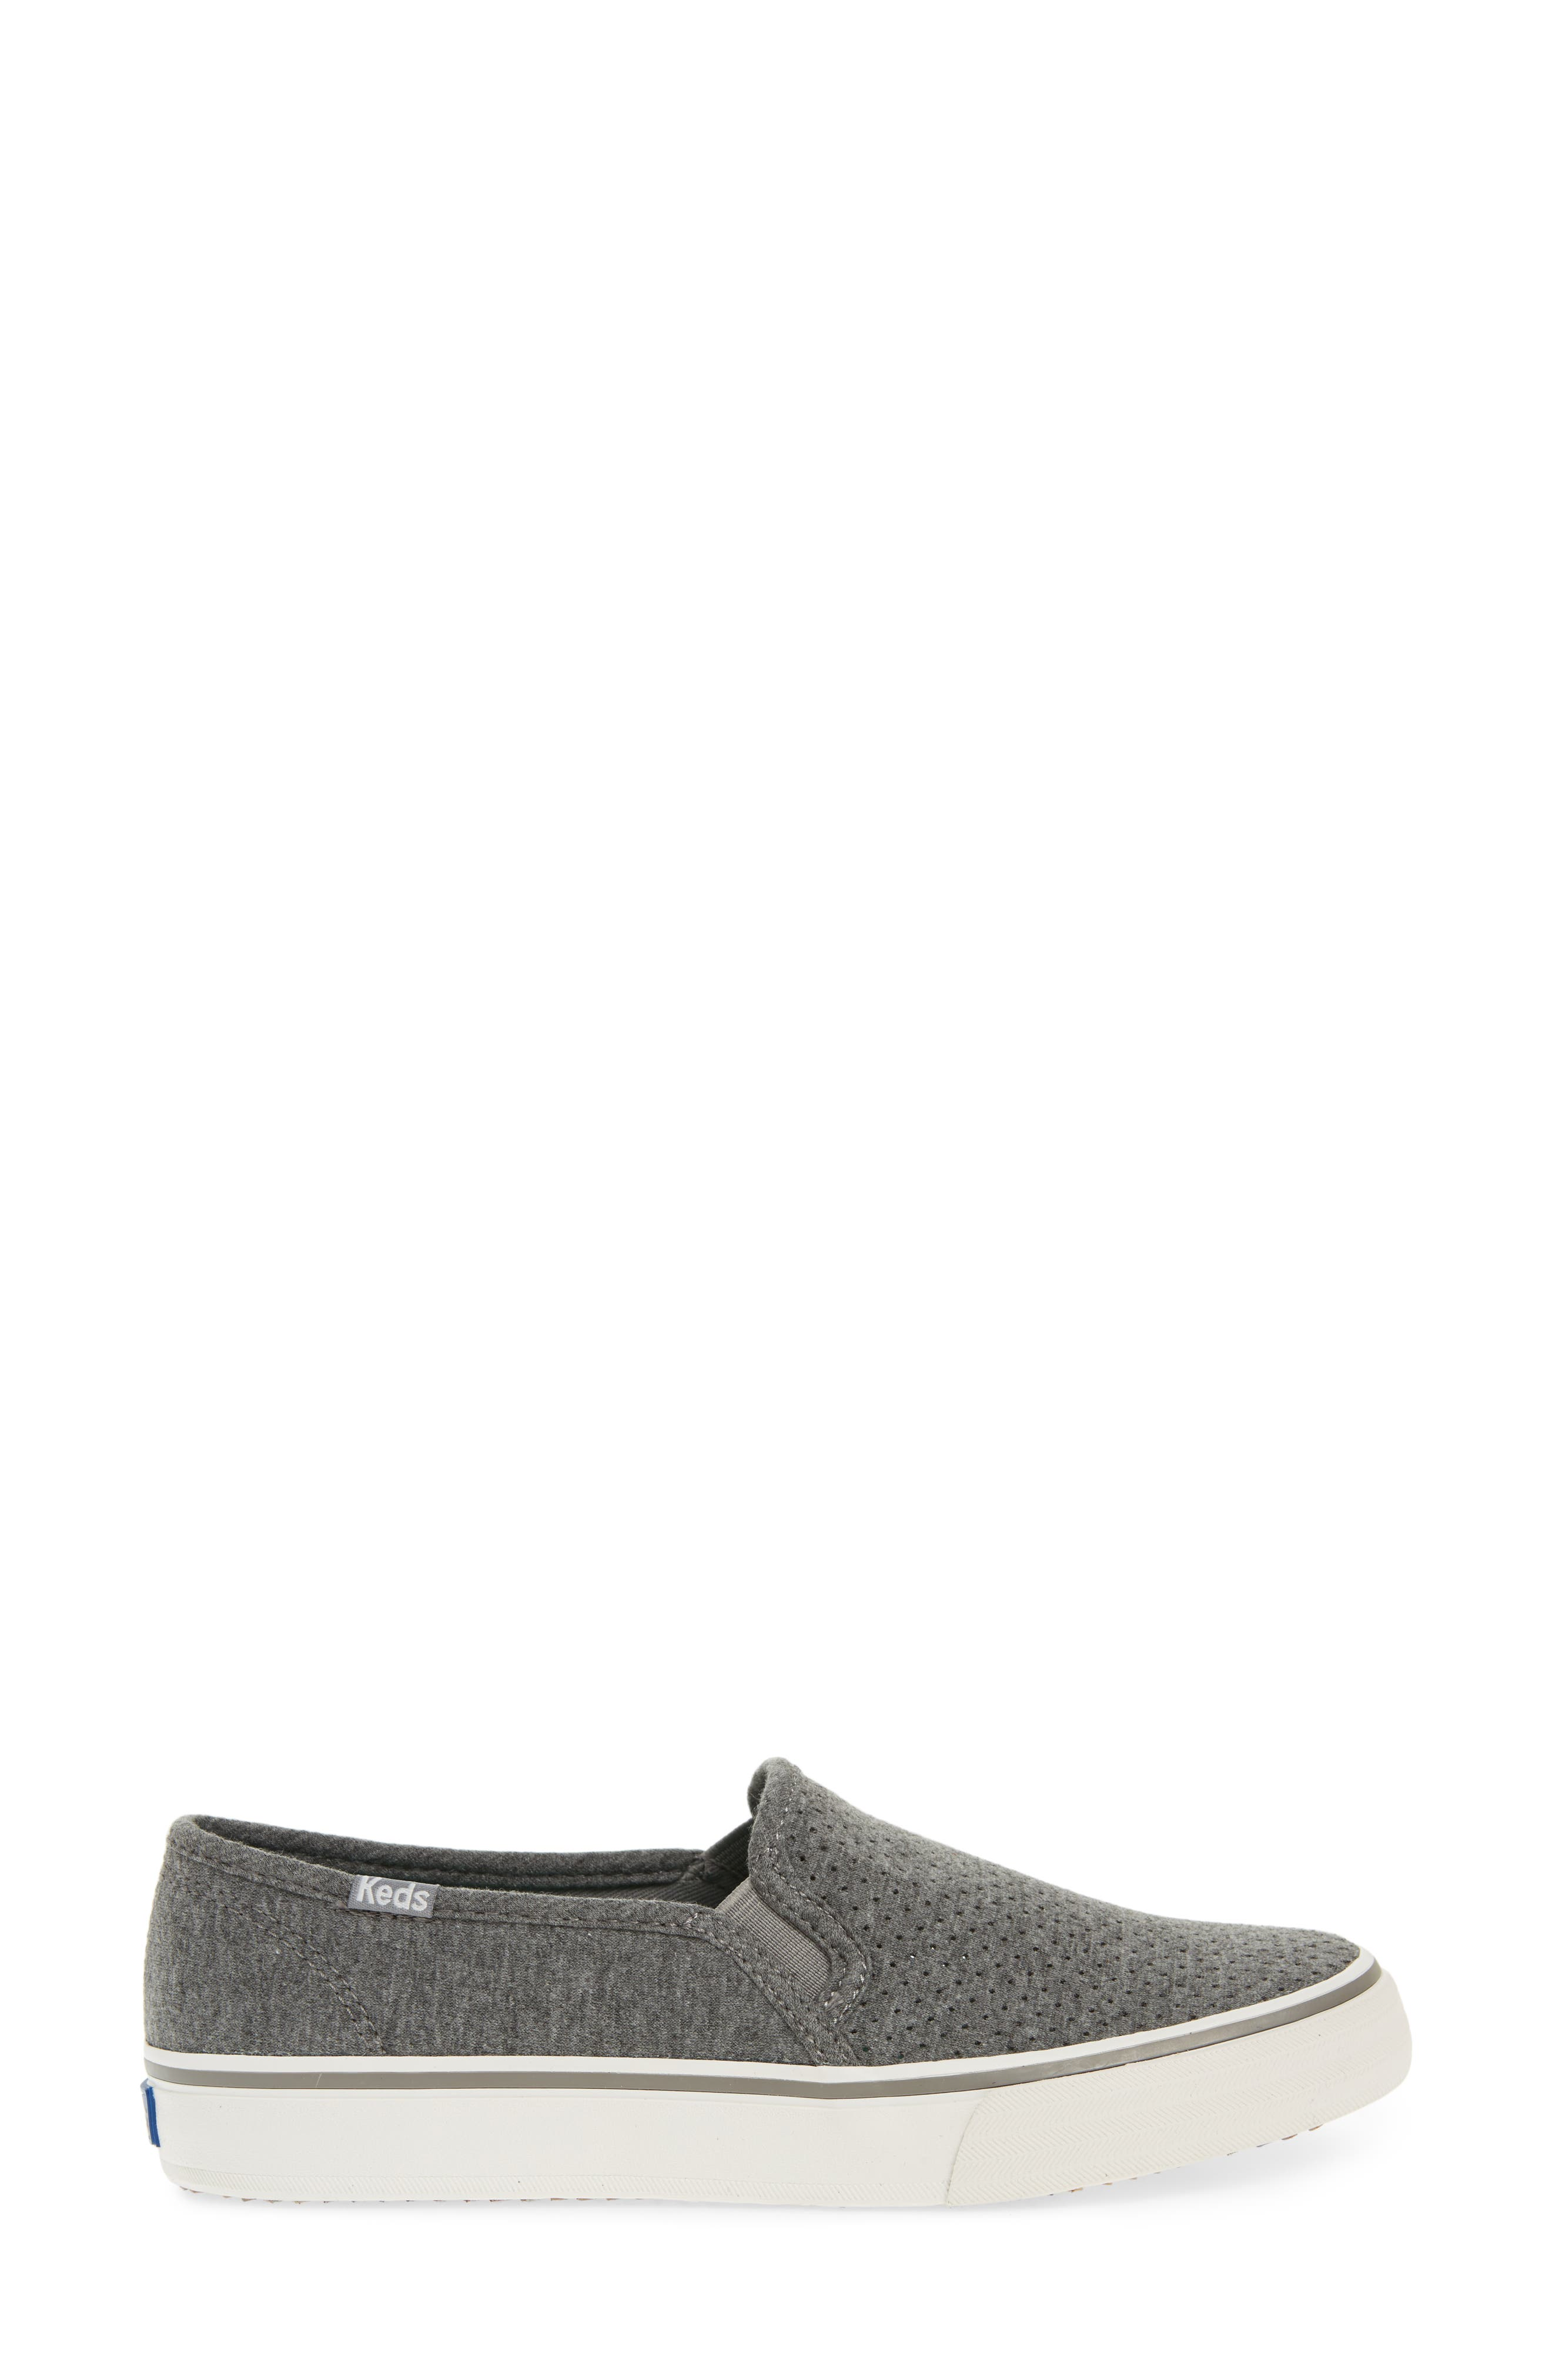 Double Decker Perforated Slip-On Sneaker,                             Alternate thumbnail 3, color,                             Charcoal